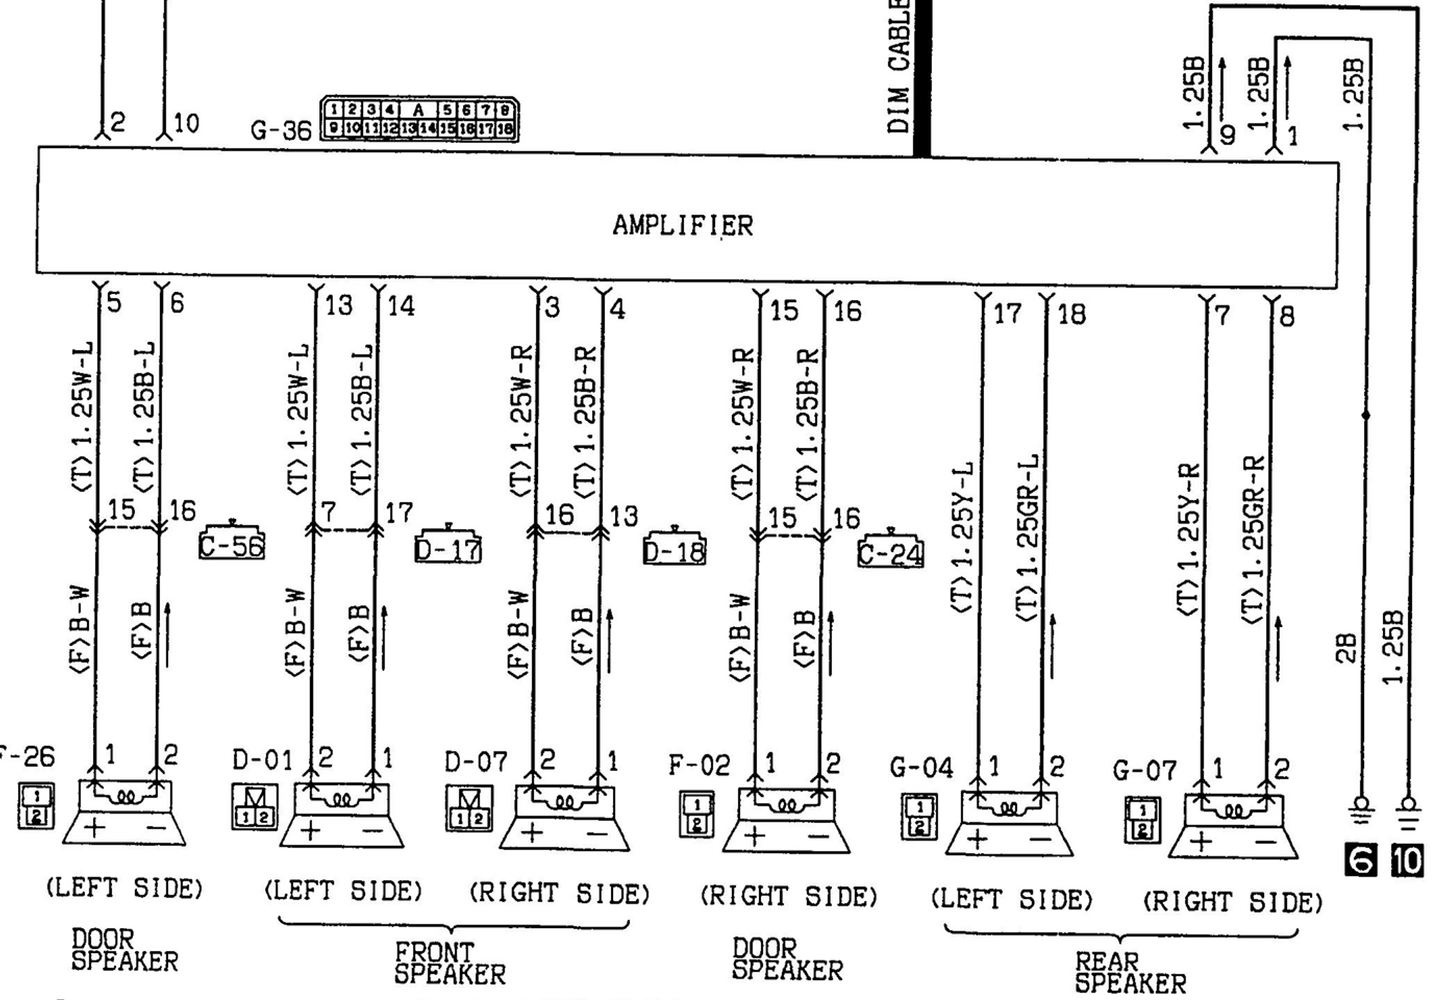 1996 mitsubishi mirage radio wiring diagram